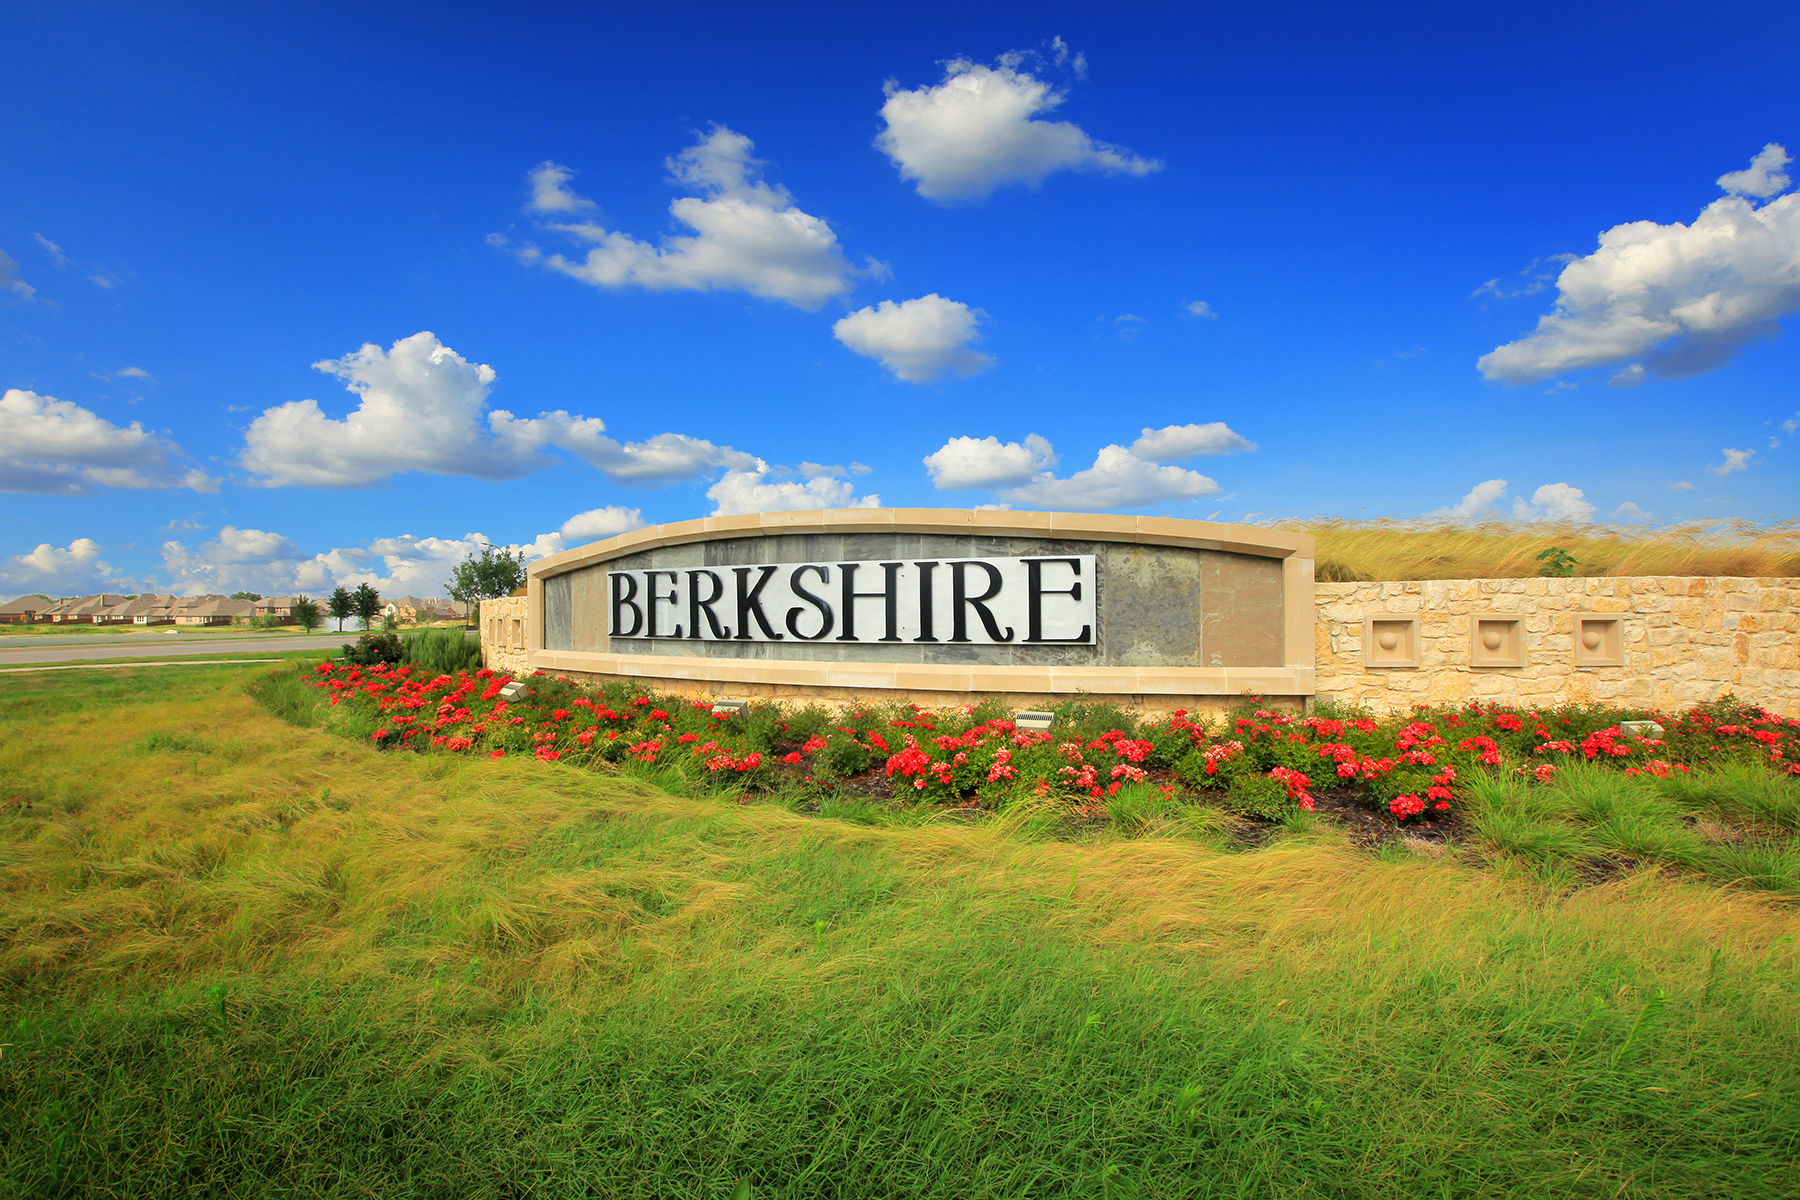 Berkshire Entrance